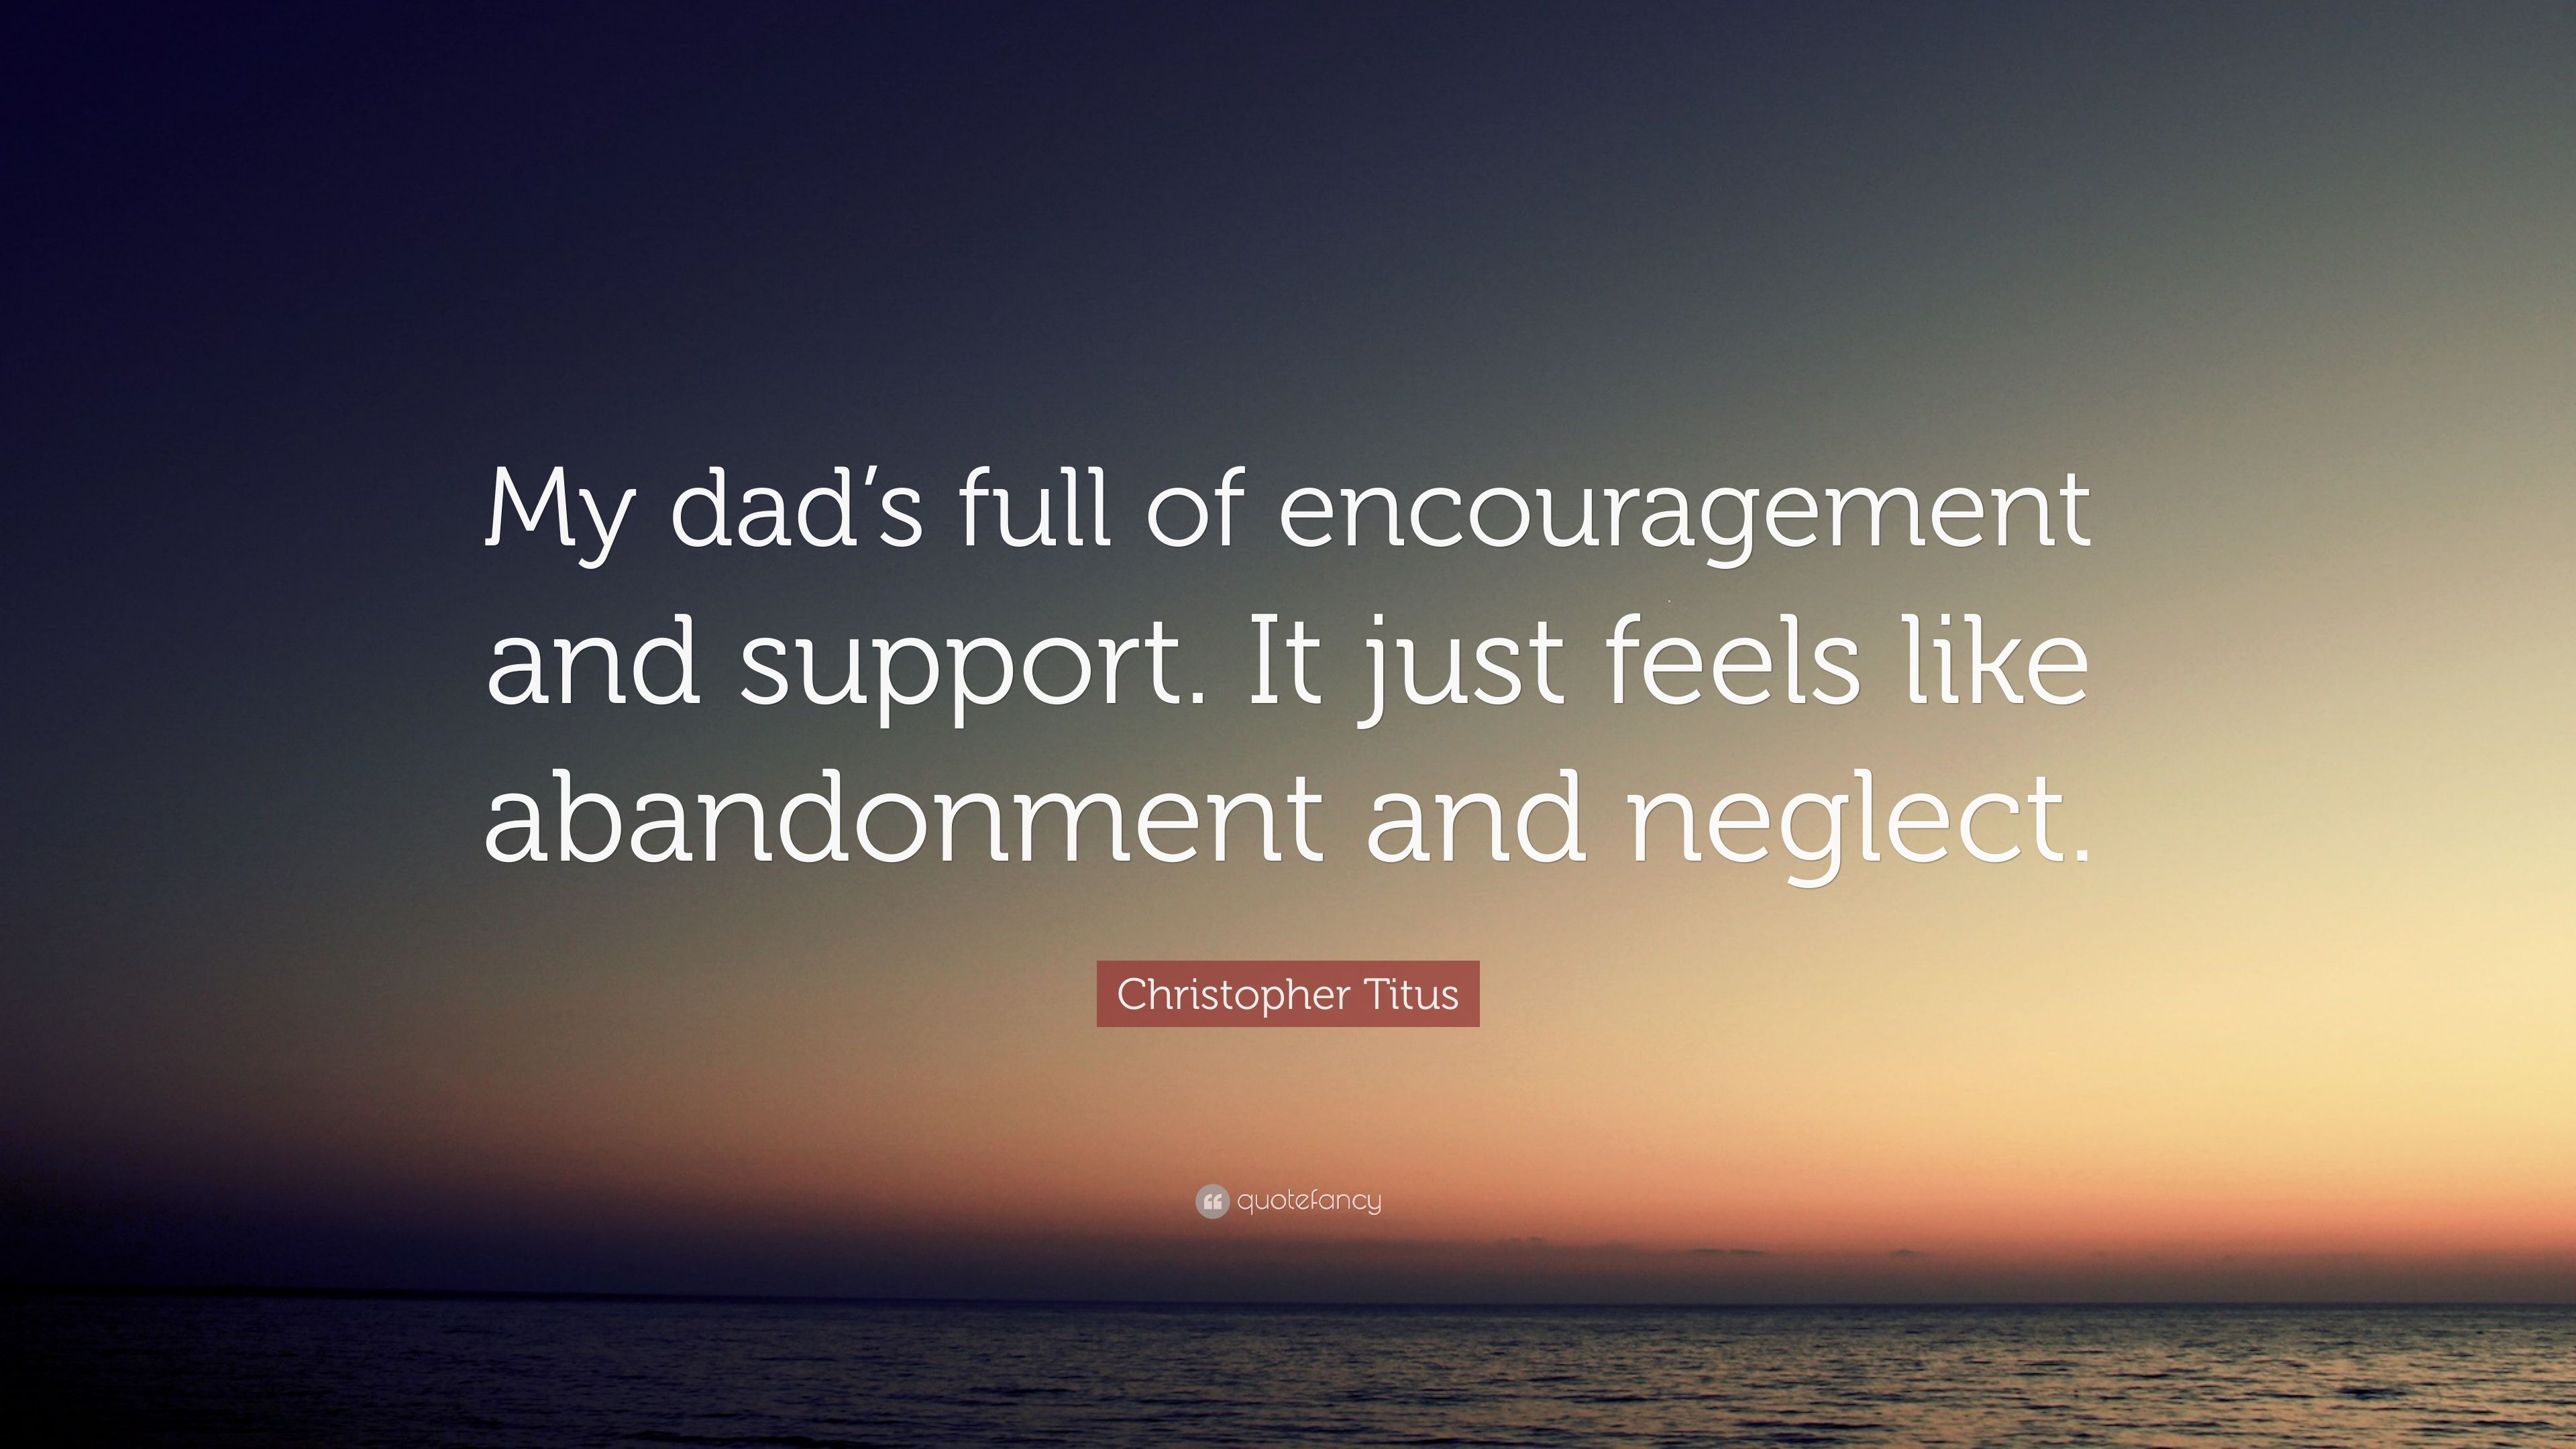 Christopher Titus Quote My Dad S Full Of Encouragement And Support It Just Feels Like Abandonment And Neglect 7 Wallpapers Quotefancy